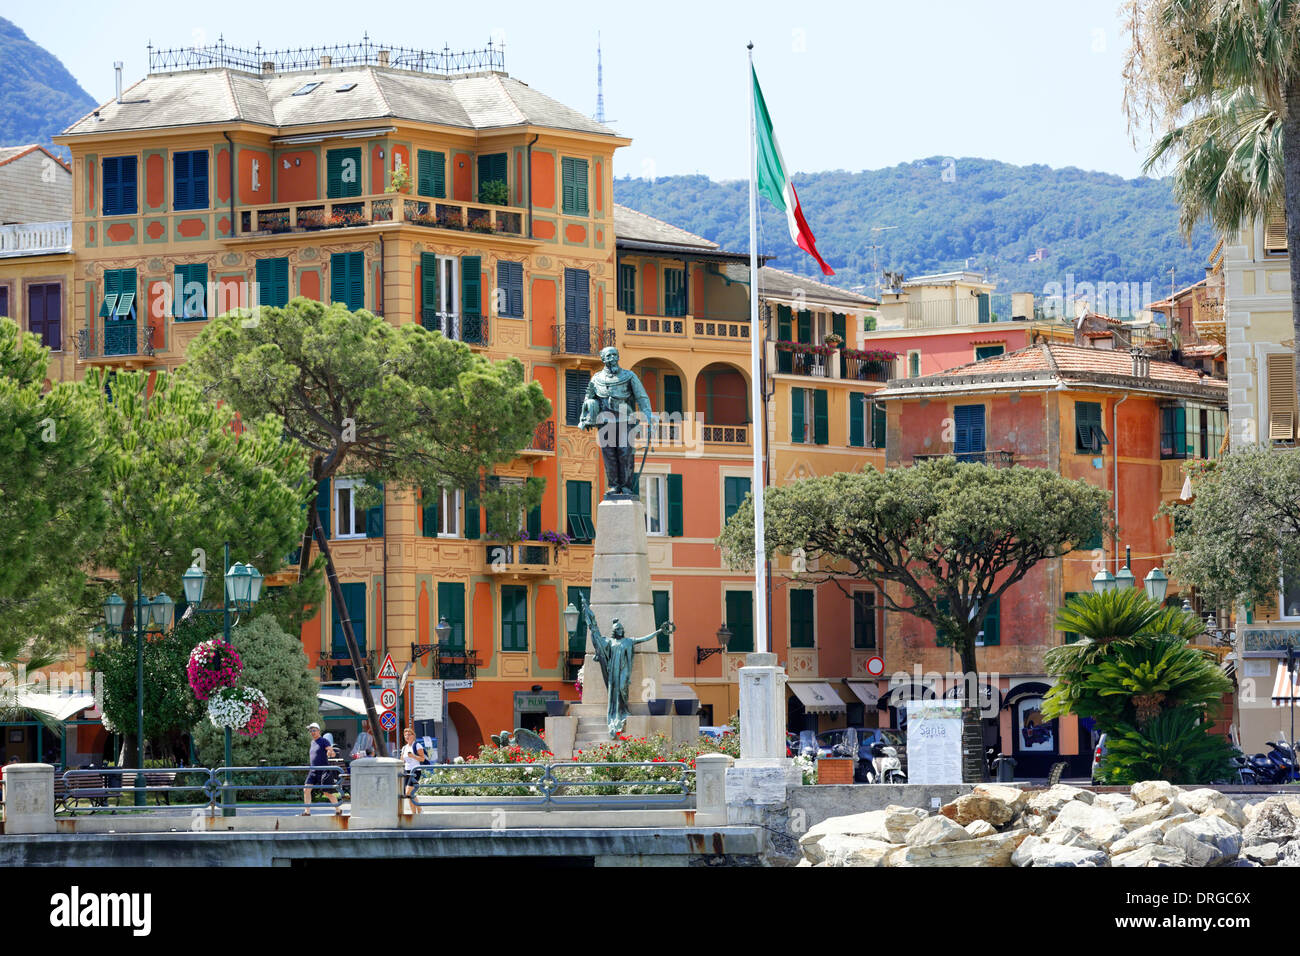 Statue of Victor Emmanuel II, King of Italy, Santha Margherita, Liguria, Italy - Stock Image